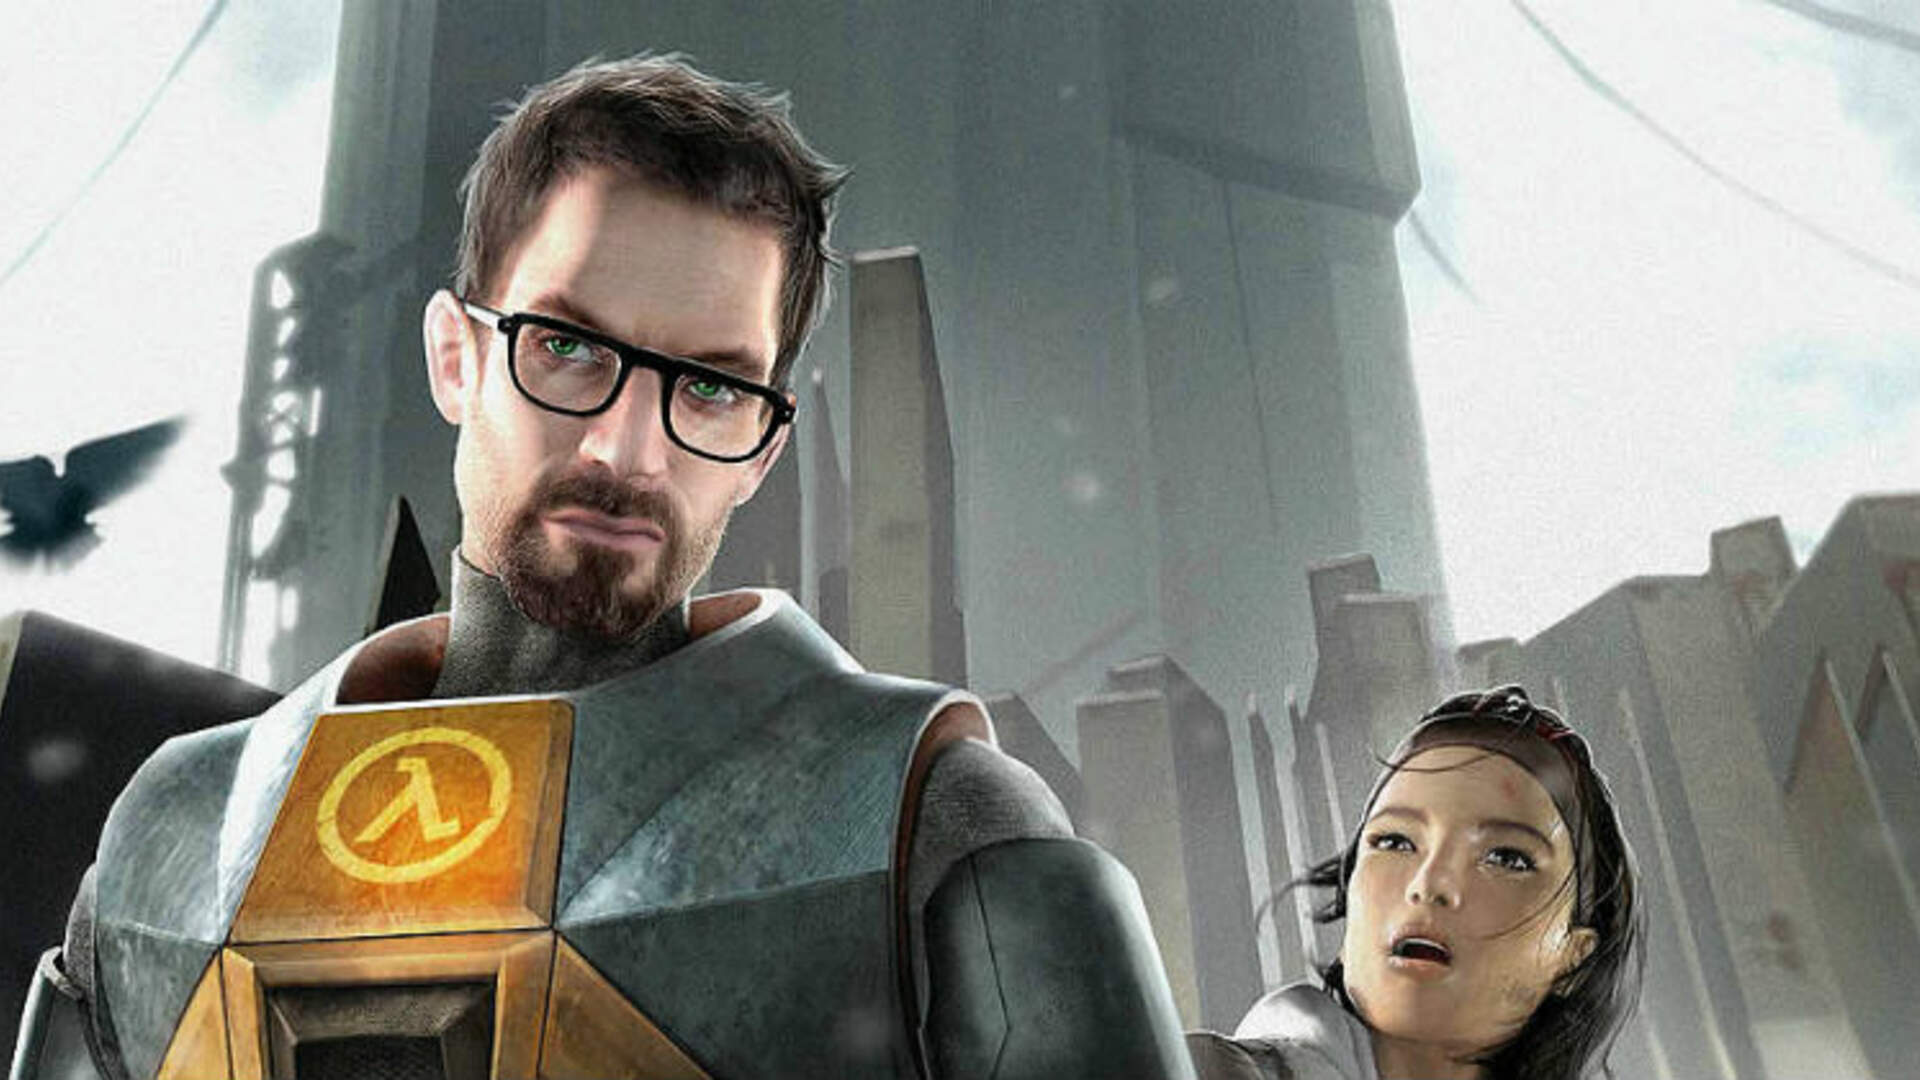 Annihilation Director Alex Garland Has Been Email Penpals With Half-Life's Marc Laidlaw for 15 Years